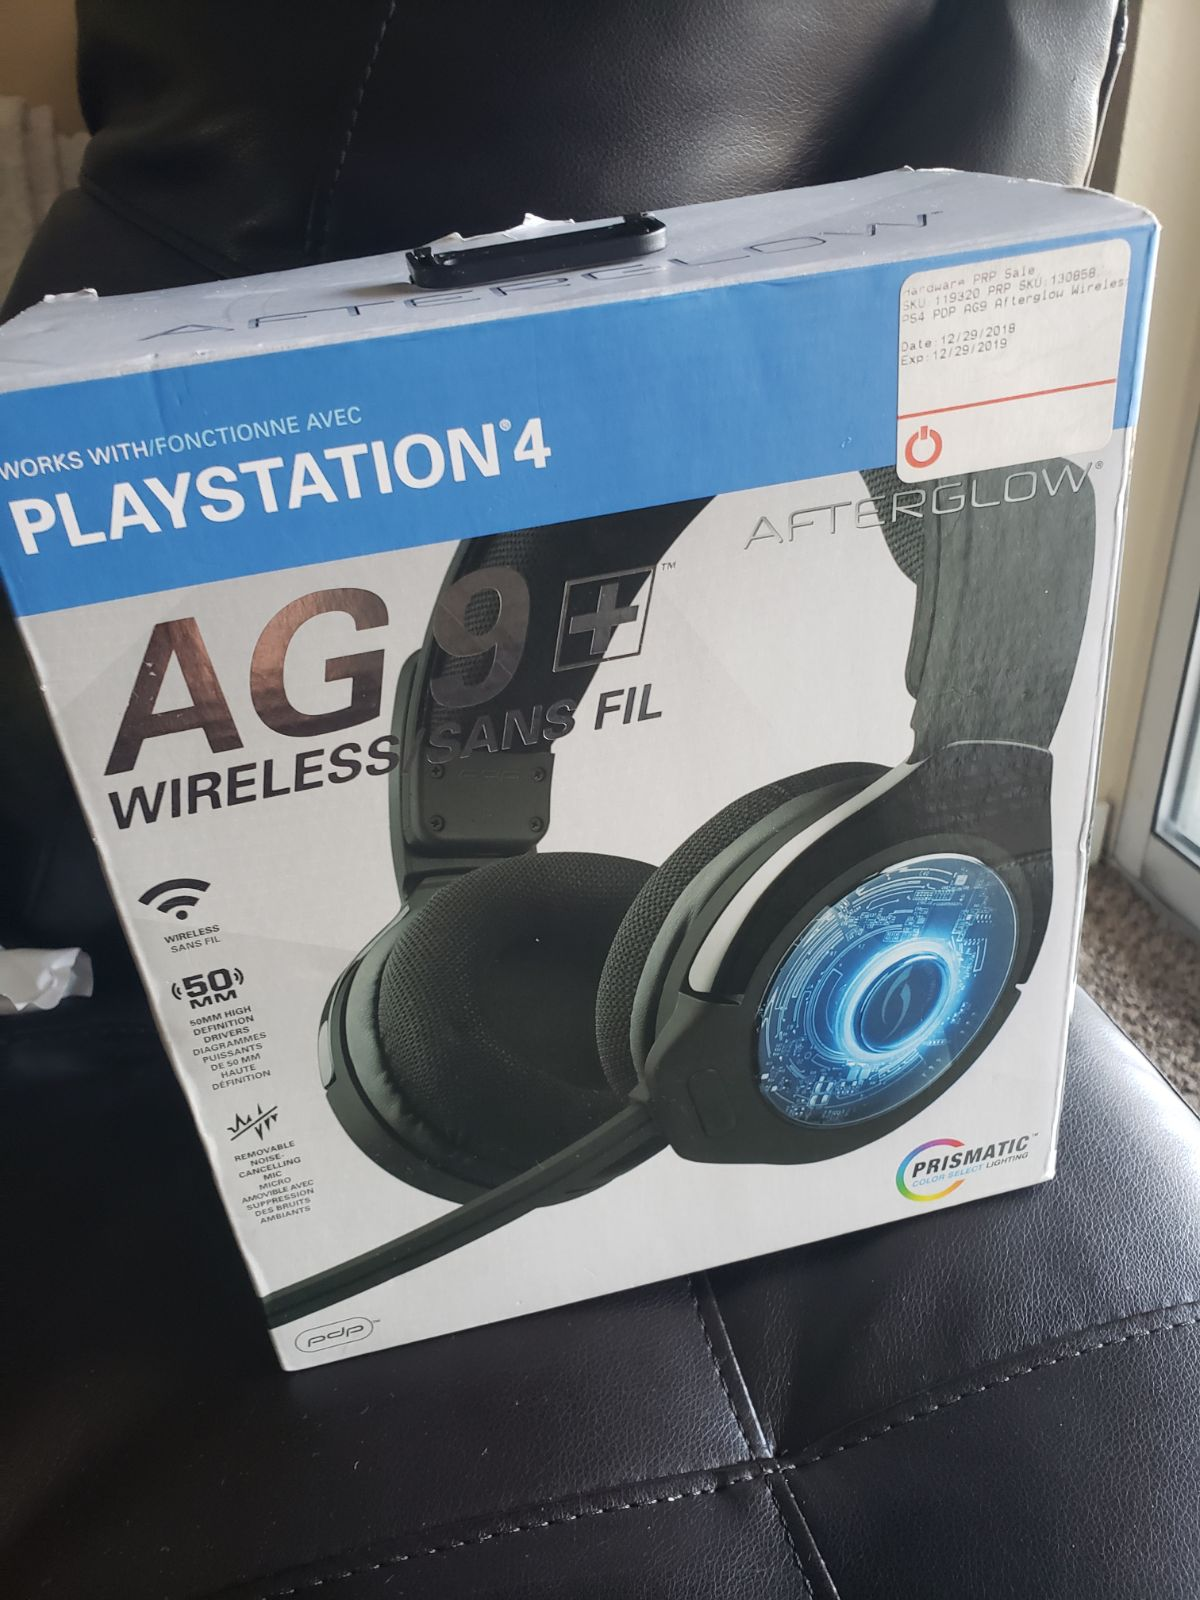 Amazing AG9+ Wireless Playstation 4 Glow